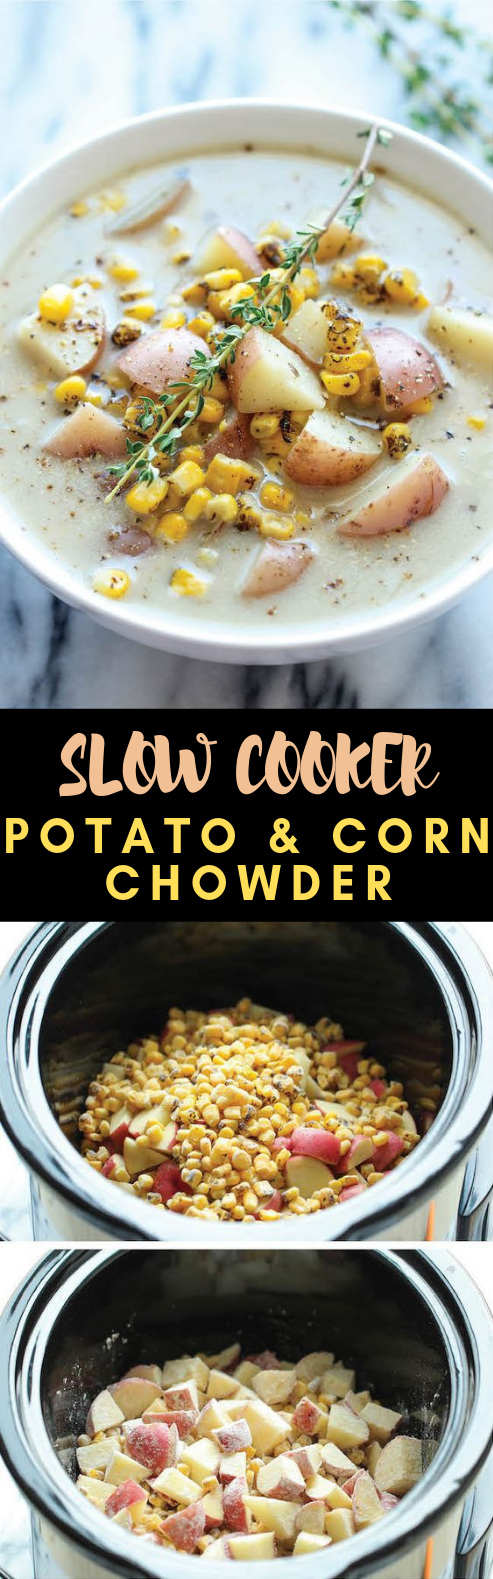 SLOW COOKER POTATO AND CORN CHOWDER #Vegetarian #Crockpot